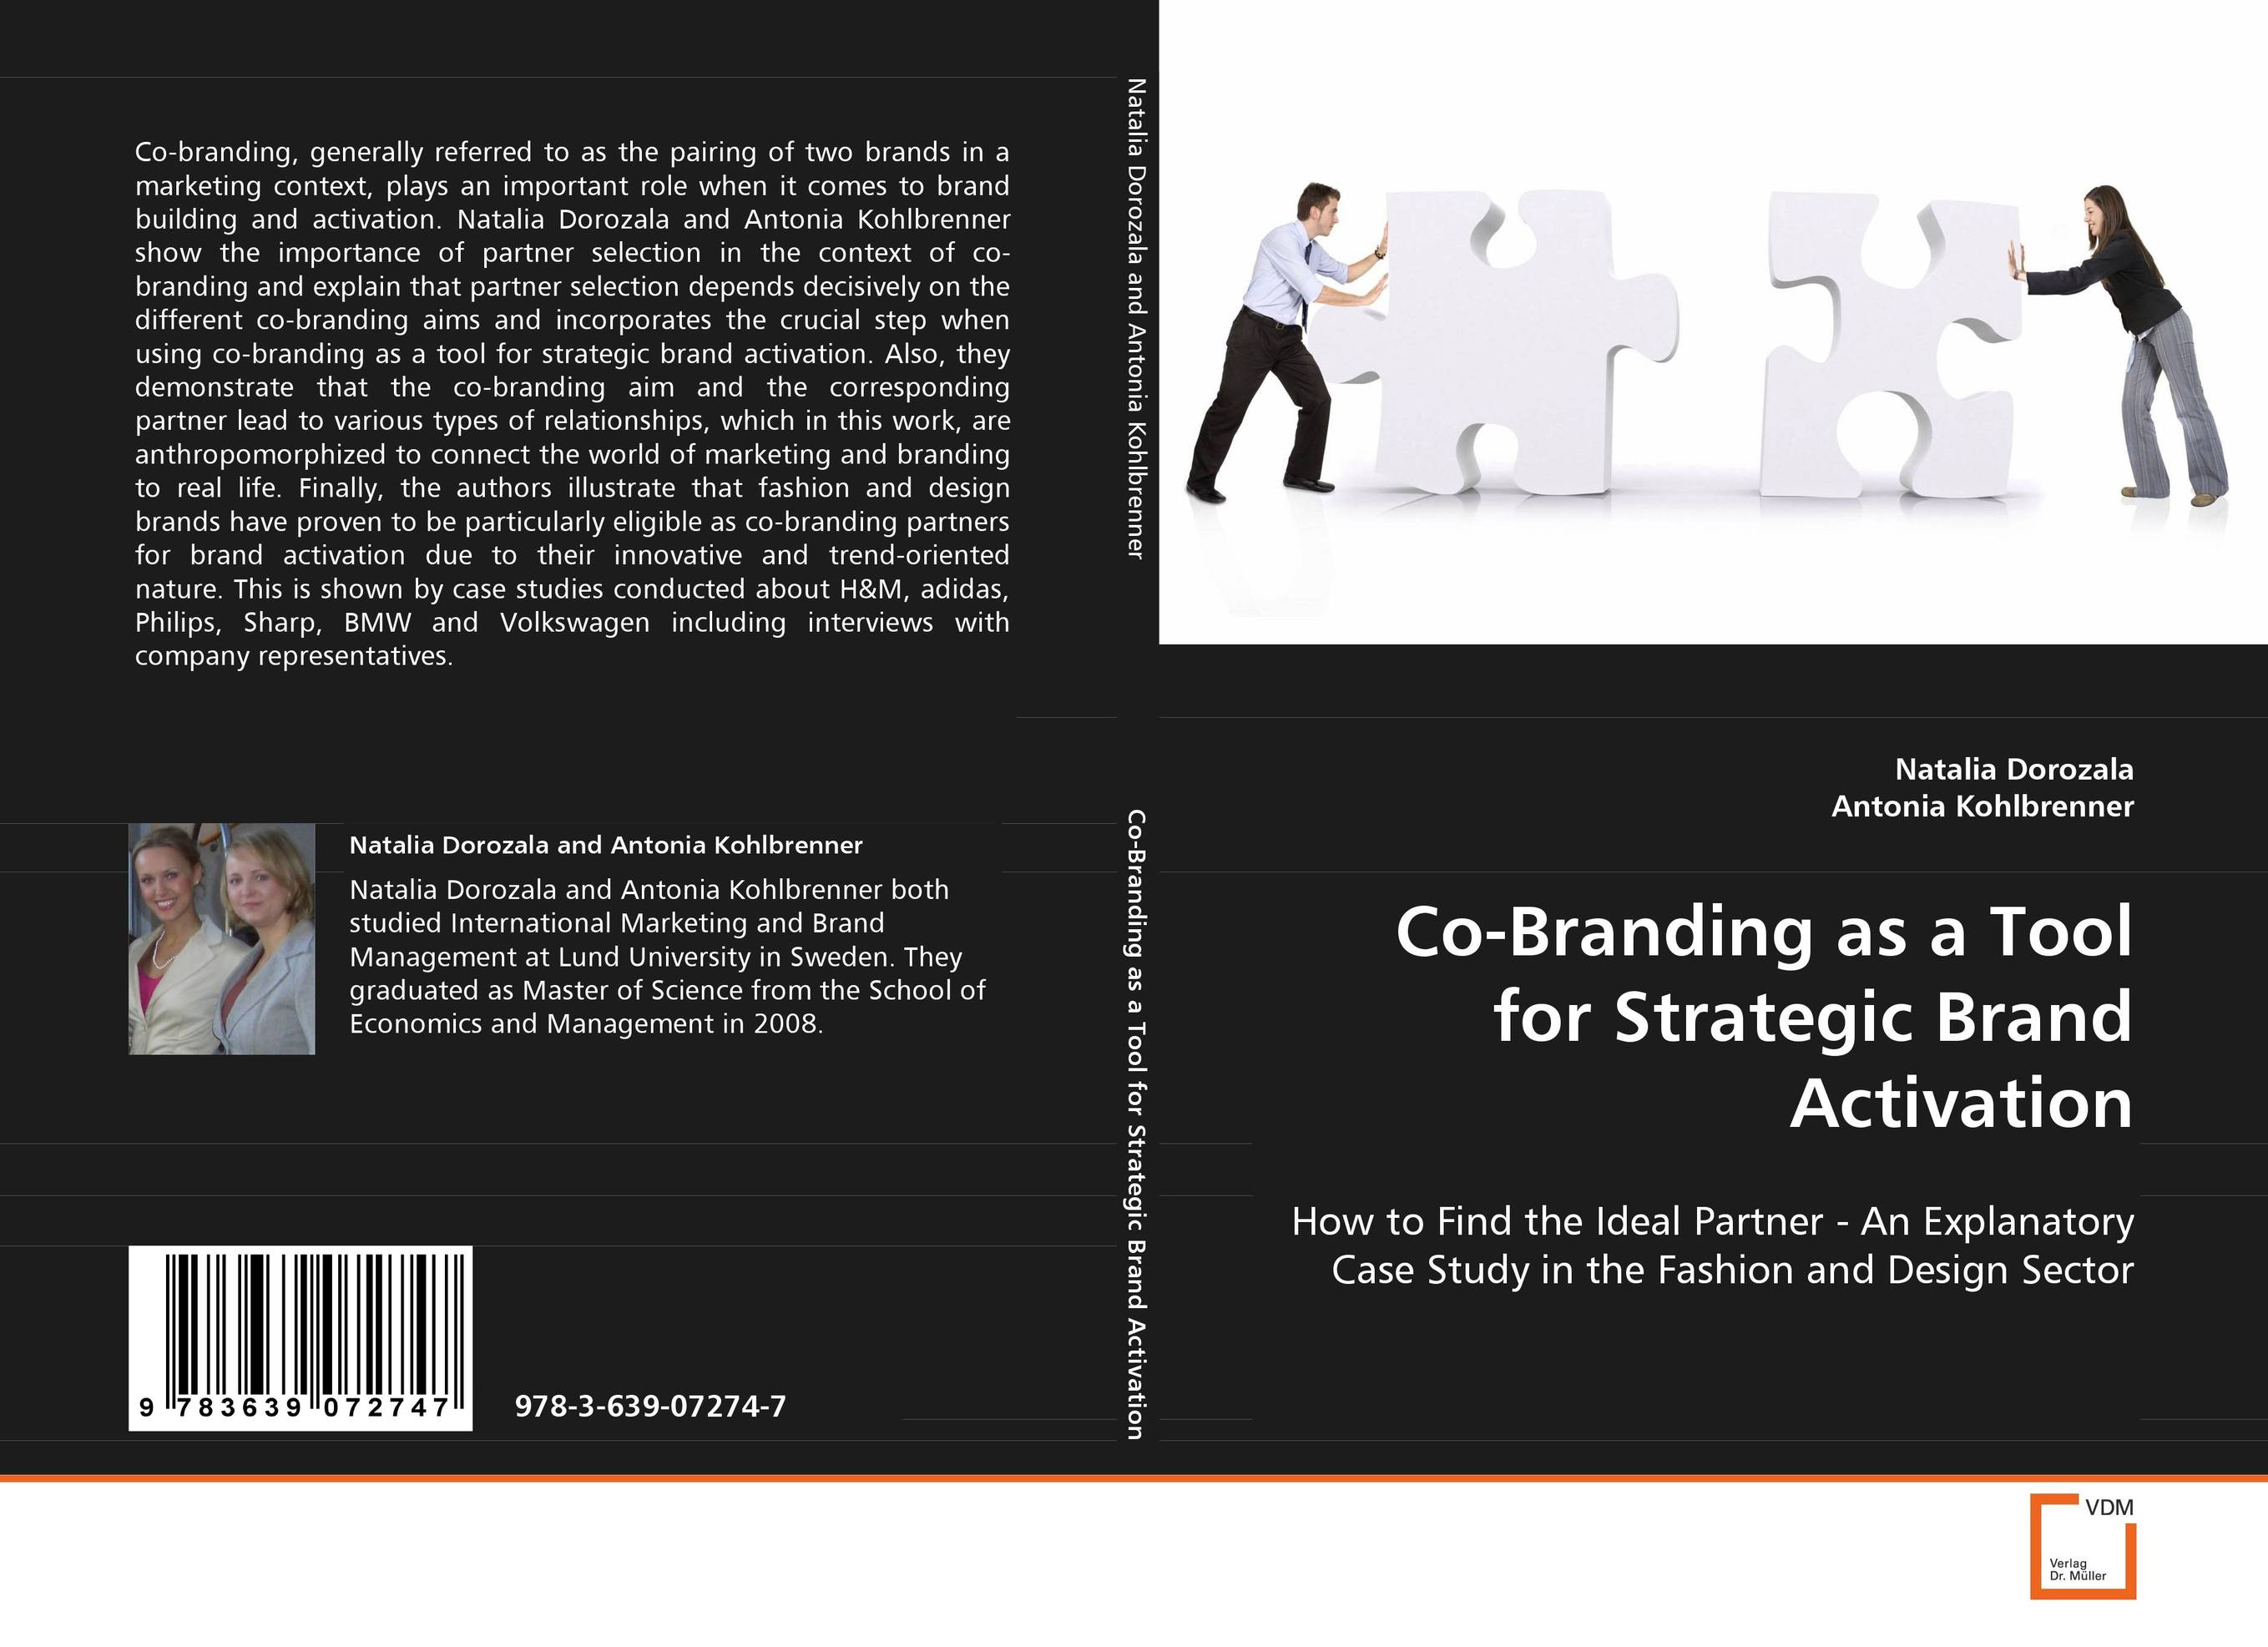 Co-Branding as a Tool for Strategic Brand Activation scott stratten unbranding 100 branding lessons for the age of disruption